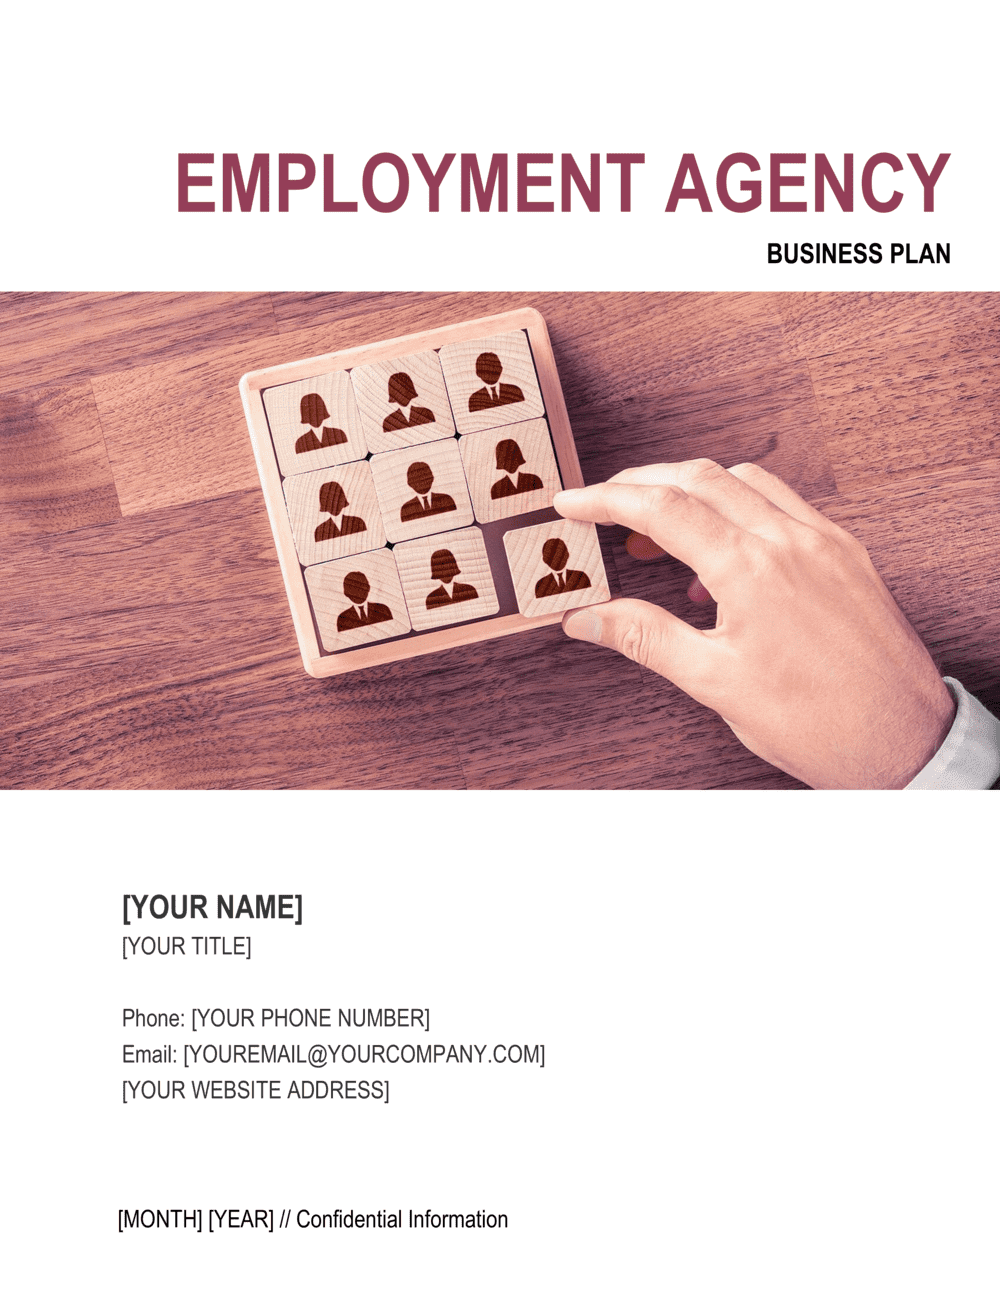 Business-in-a-Box's Employment Agency Business Plan Template